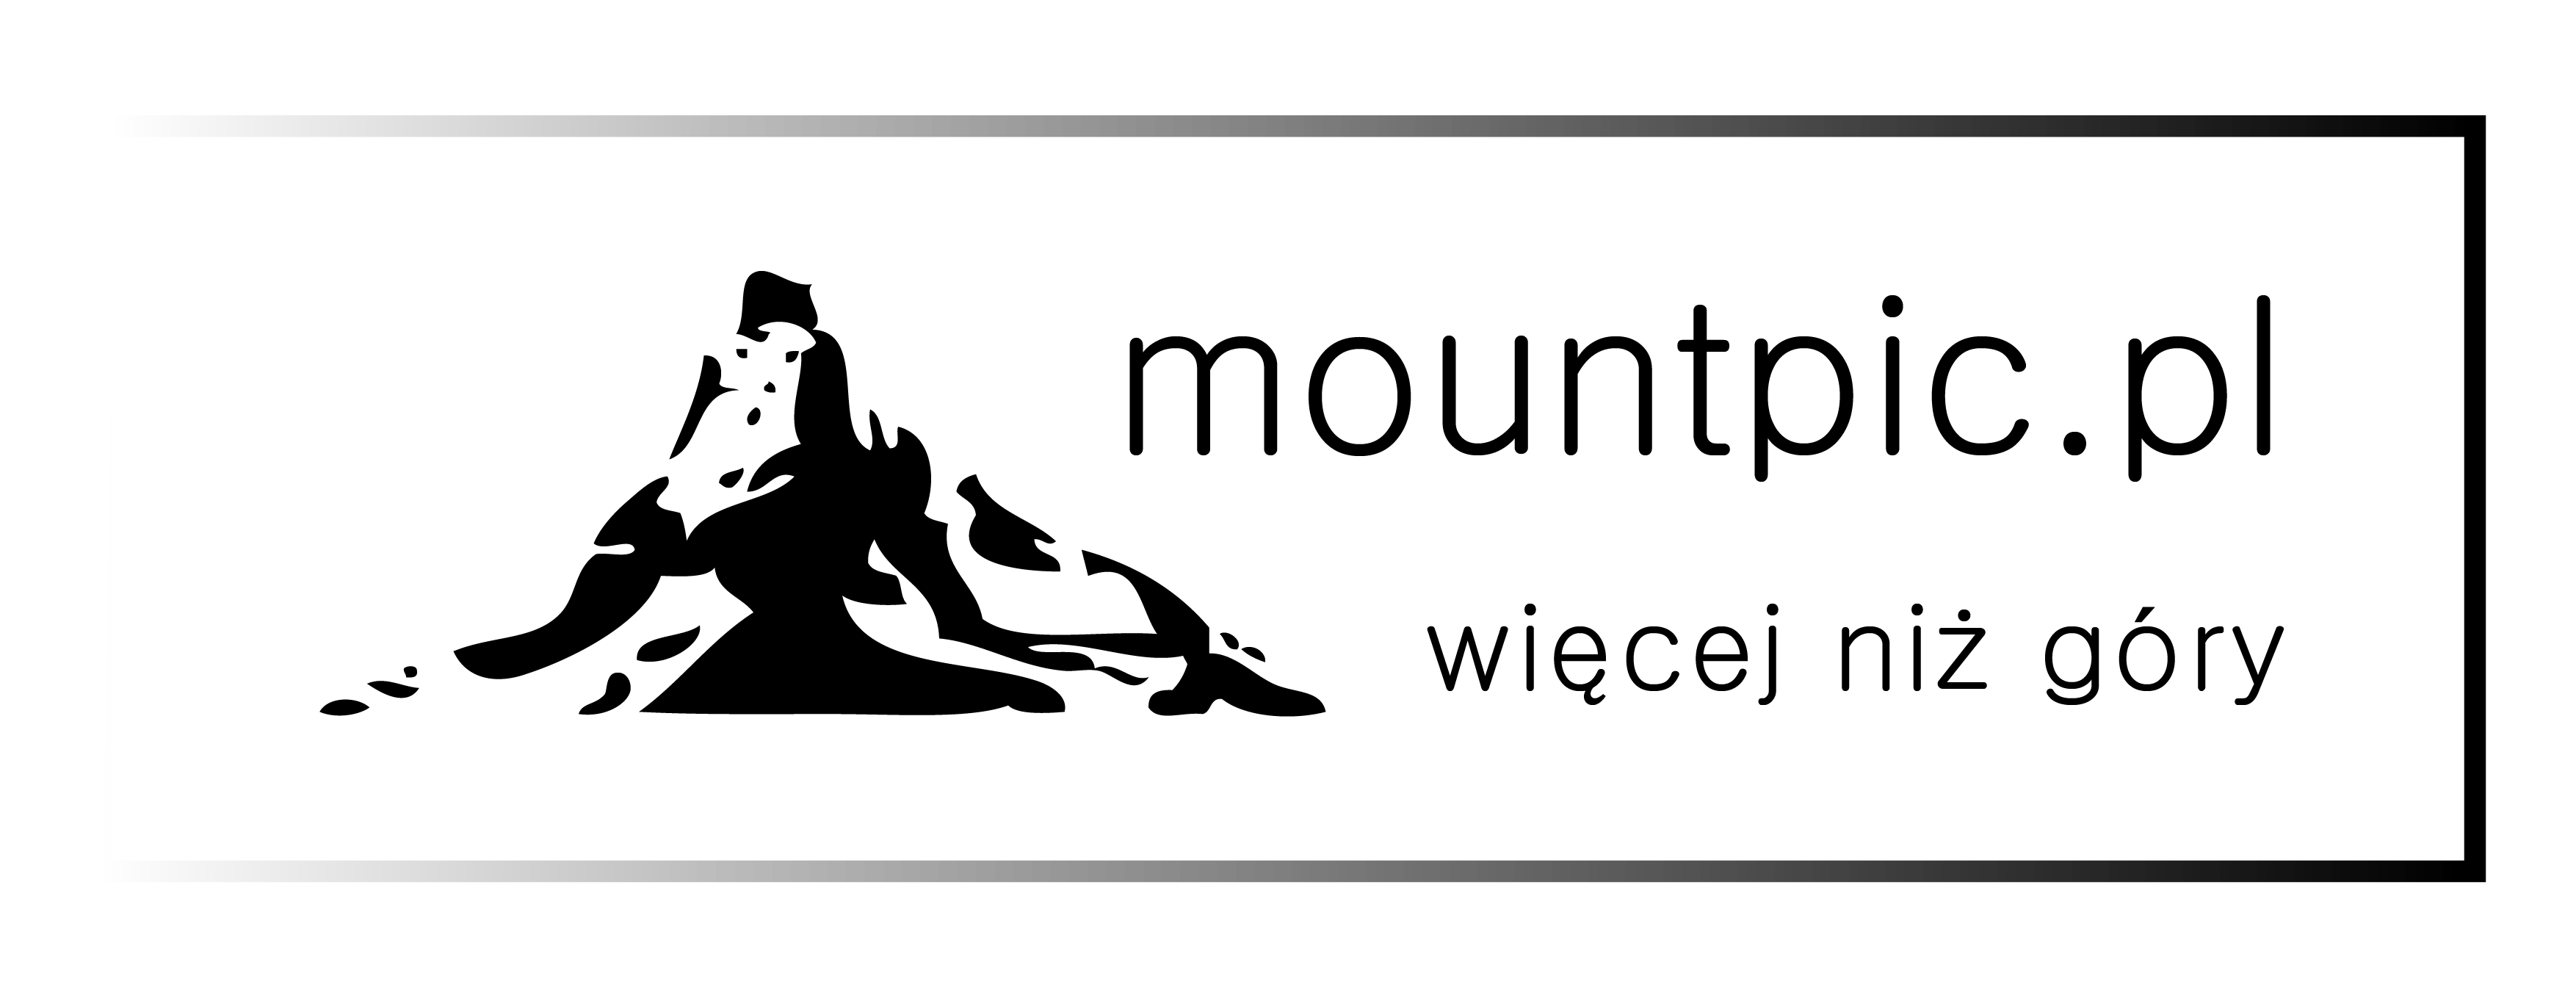 MOUNTPIC LOGO BLACK